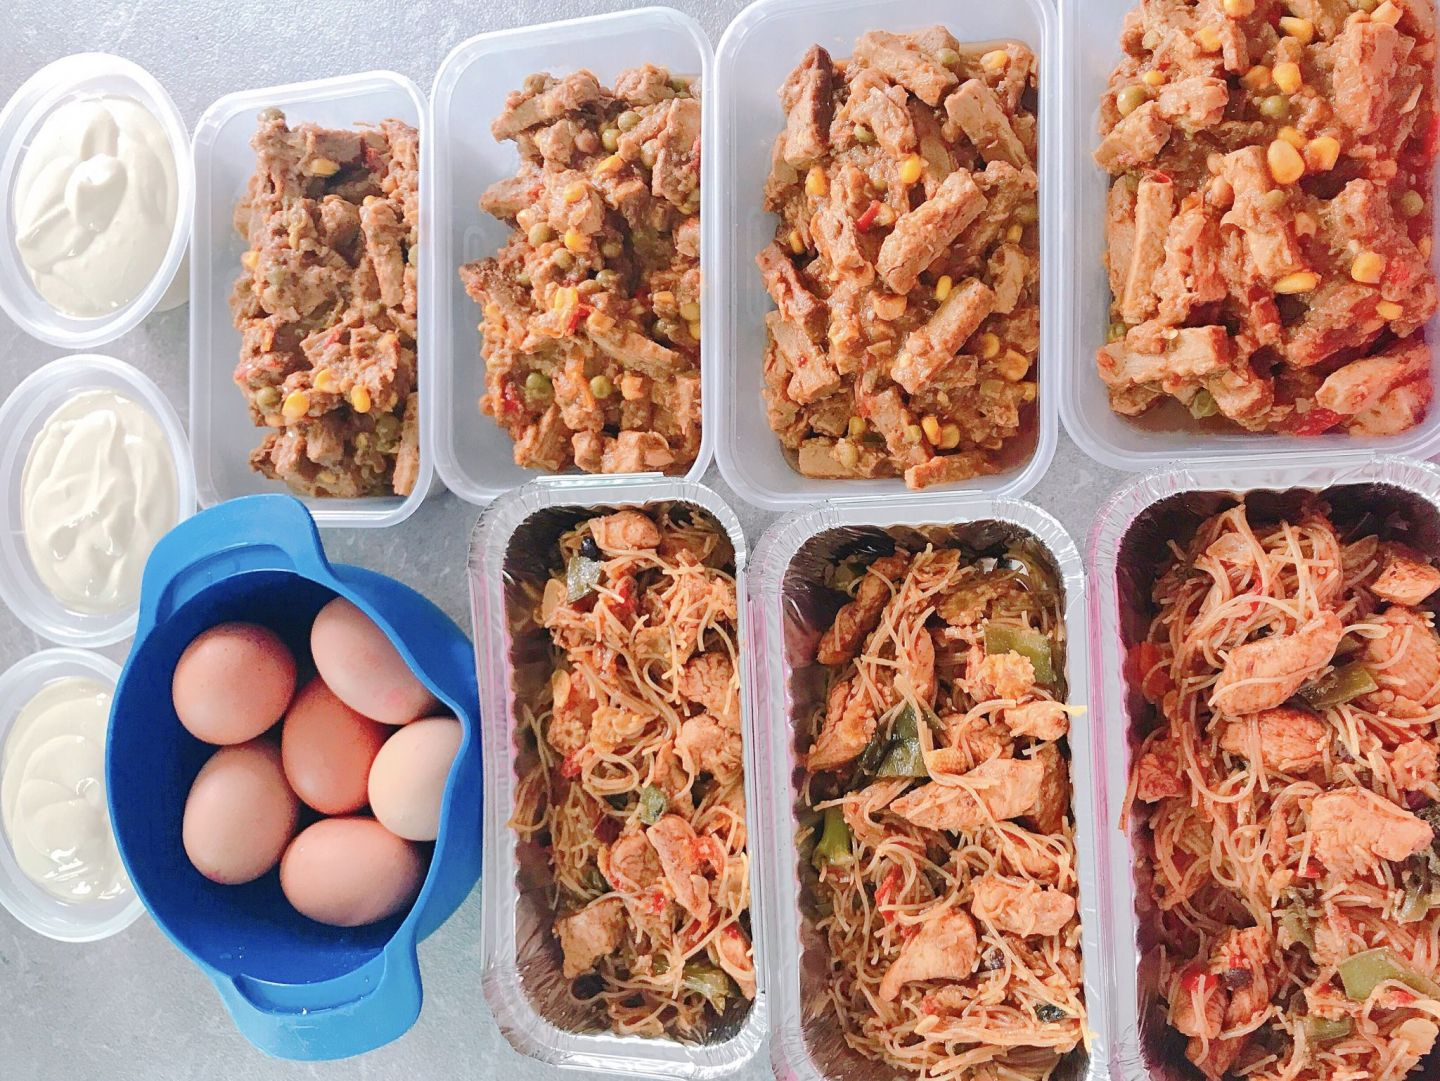 Meal Prepping Part 1